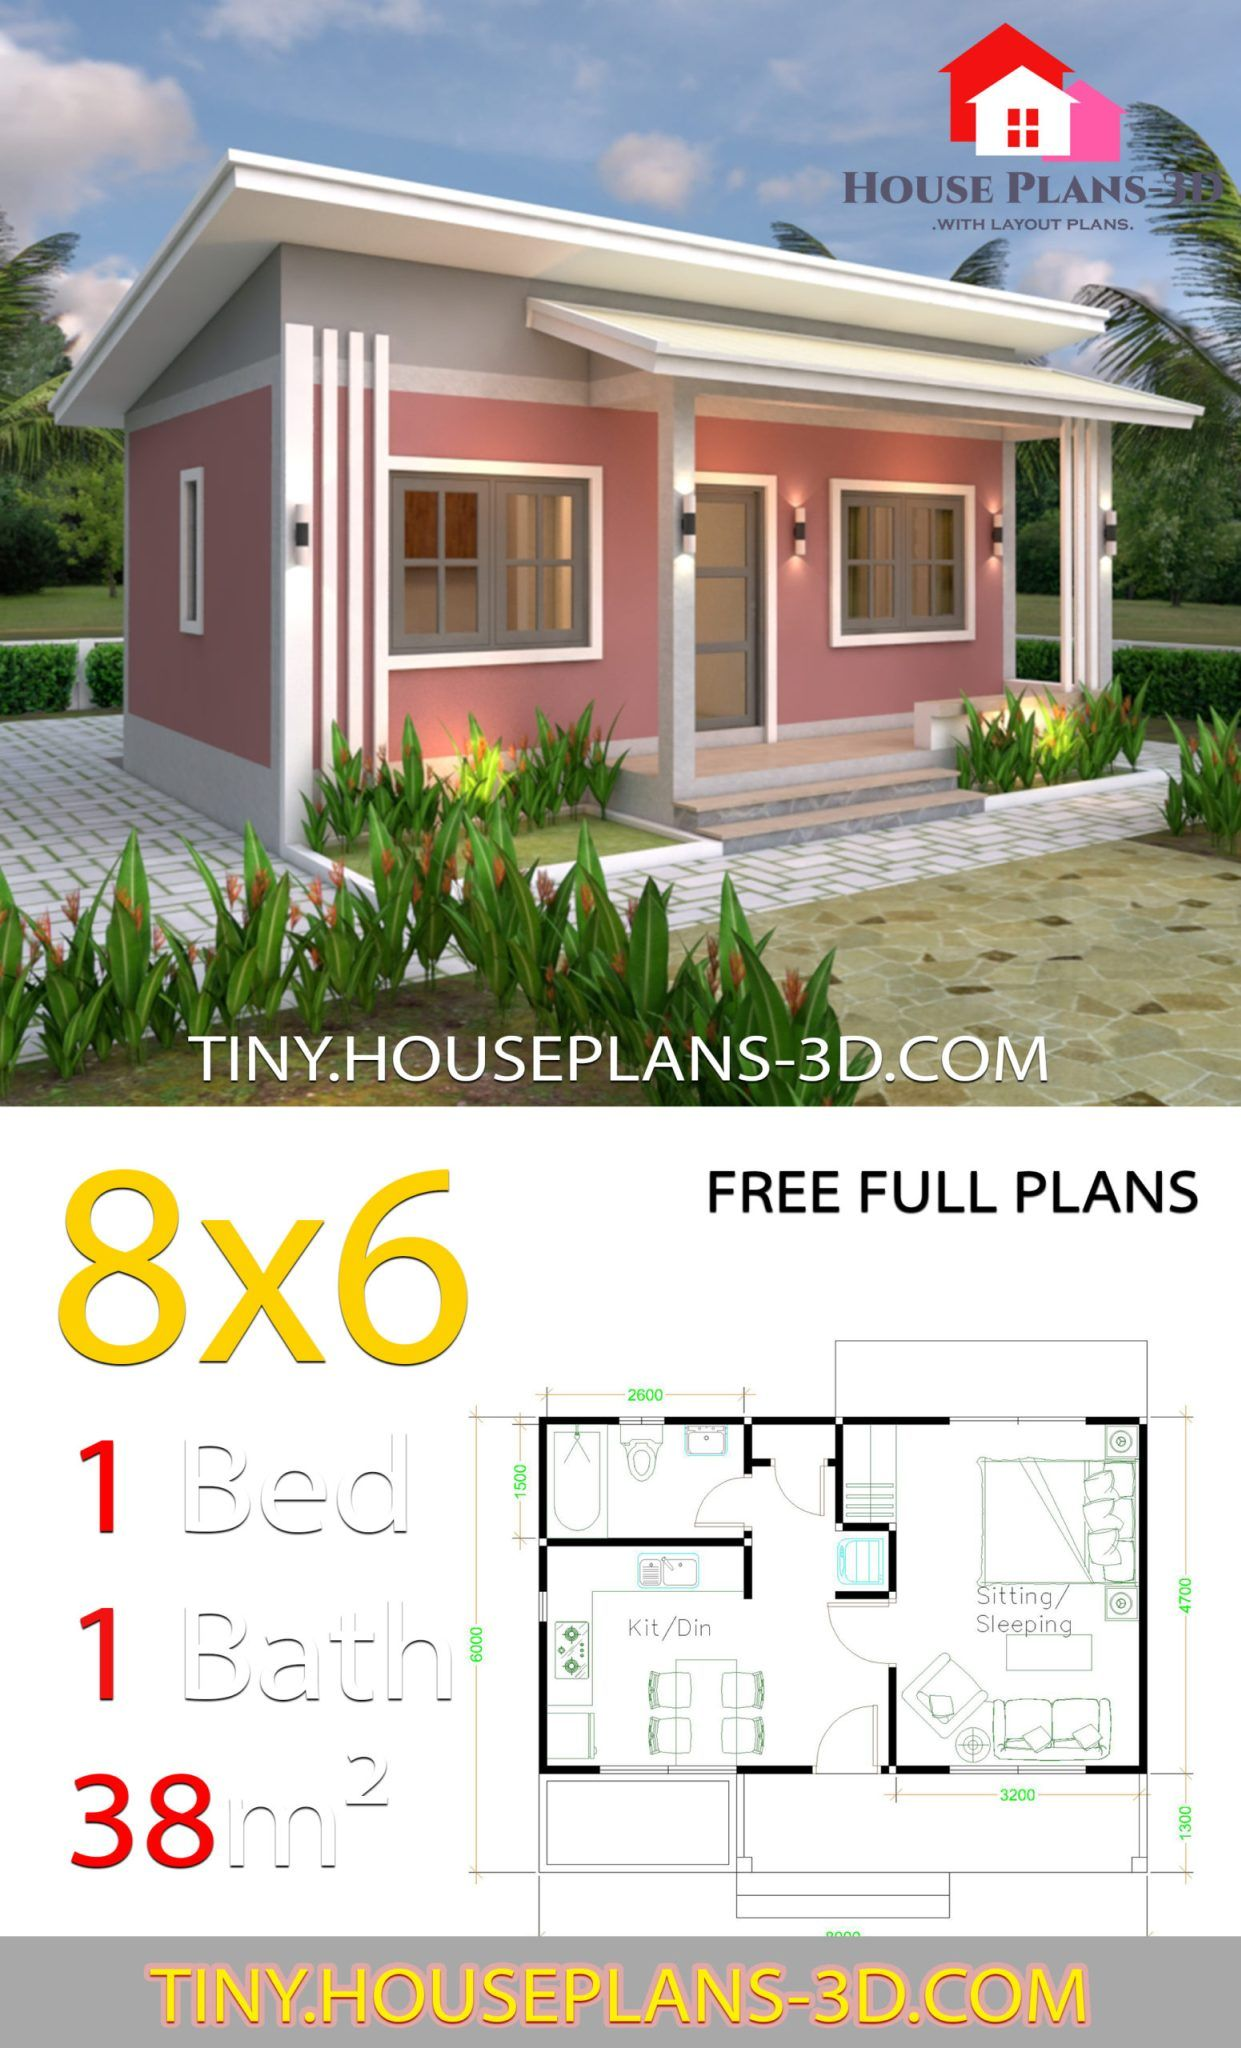 Small House Plans 8x6 With One Bedrooms Shed Roof Tiny House Plans Small House Architecture Architecture House Small House Plans